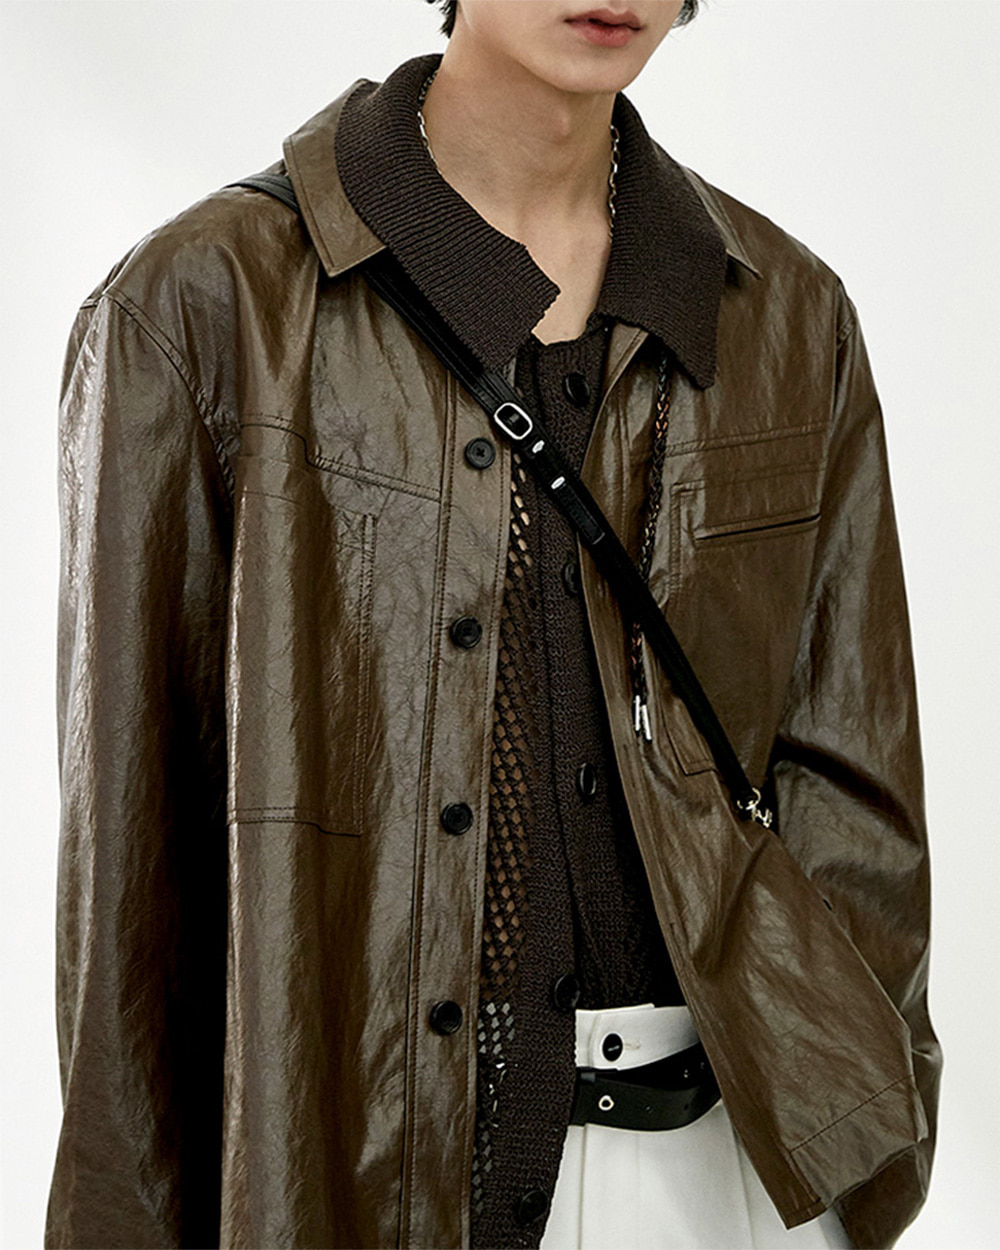 HALEINE알렌느 BROWN 3D detail eco leather shirts jacket(NJ003)